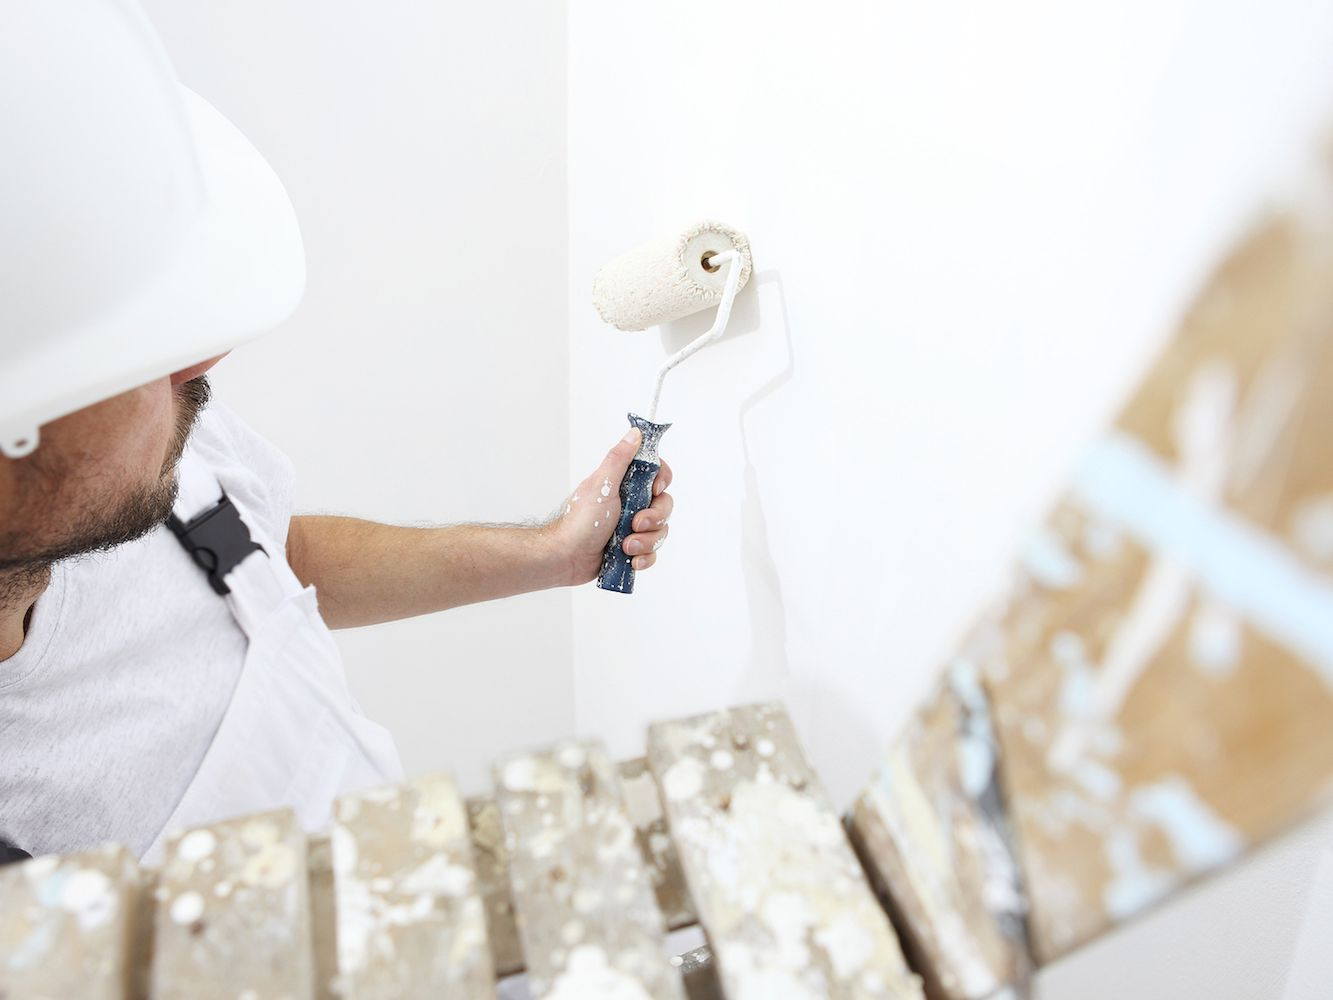 Should You Buy a Home With Popcorn Ceilings?